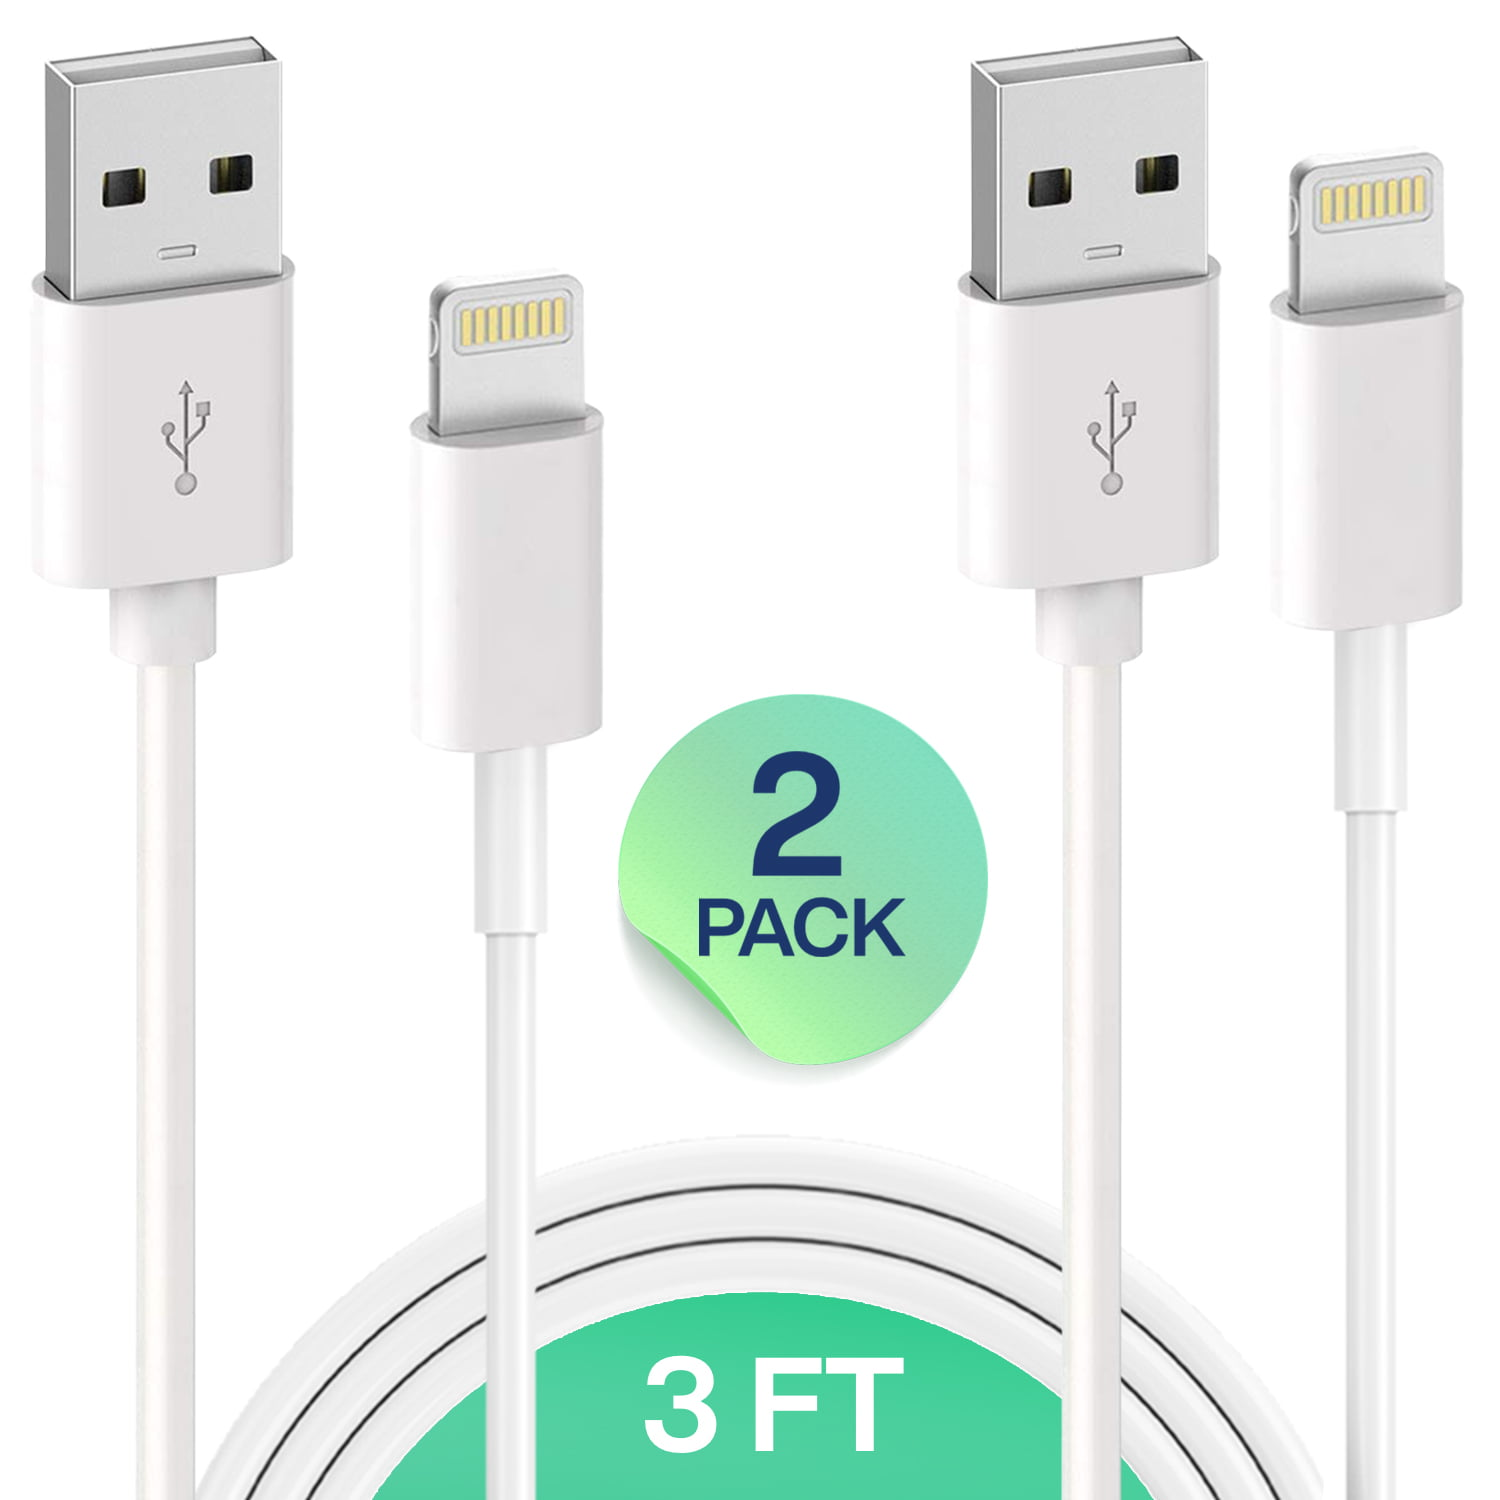 for Apple iPhone Xs,Xs Max,XR,X,8,8 Plus,7,7 Plus,6S,6S Plus,iPad Air,Mini,iPod Touch,Case Certified Charging /& Syncing Cord iPhone Charger Lightning Cable 5 Pack 10FT USB Cable Infinite Power